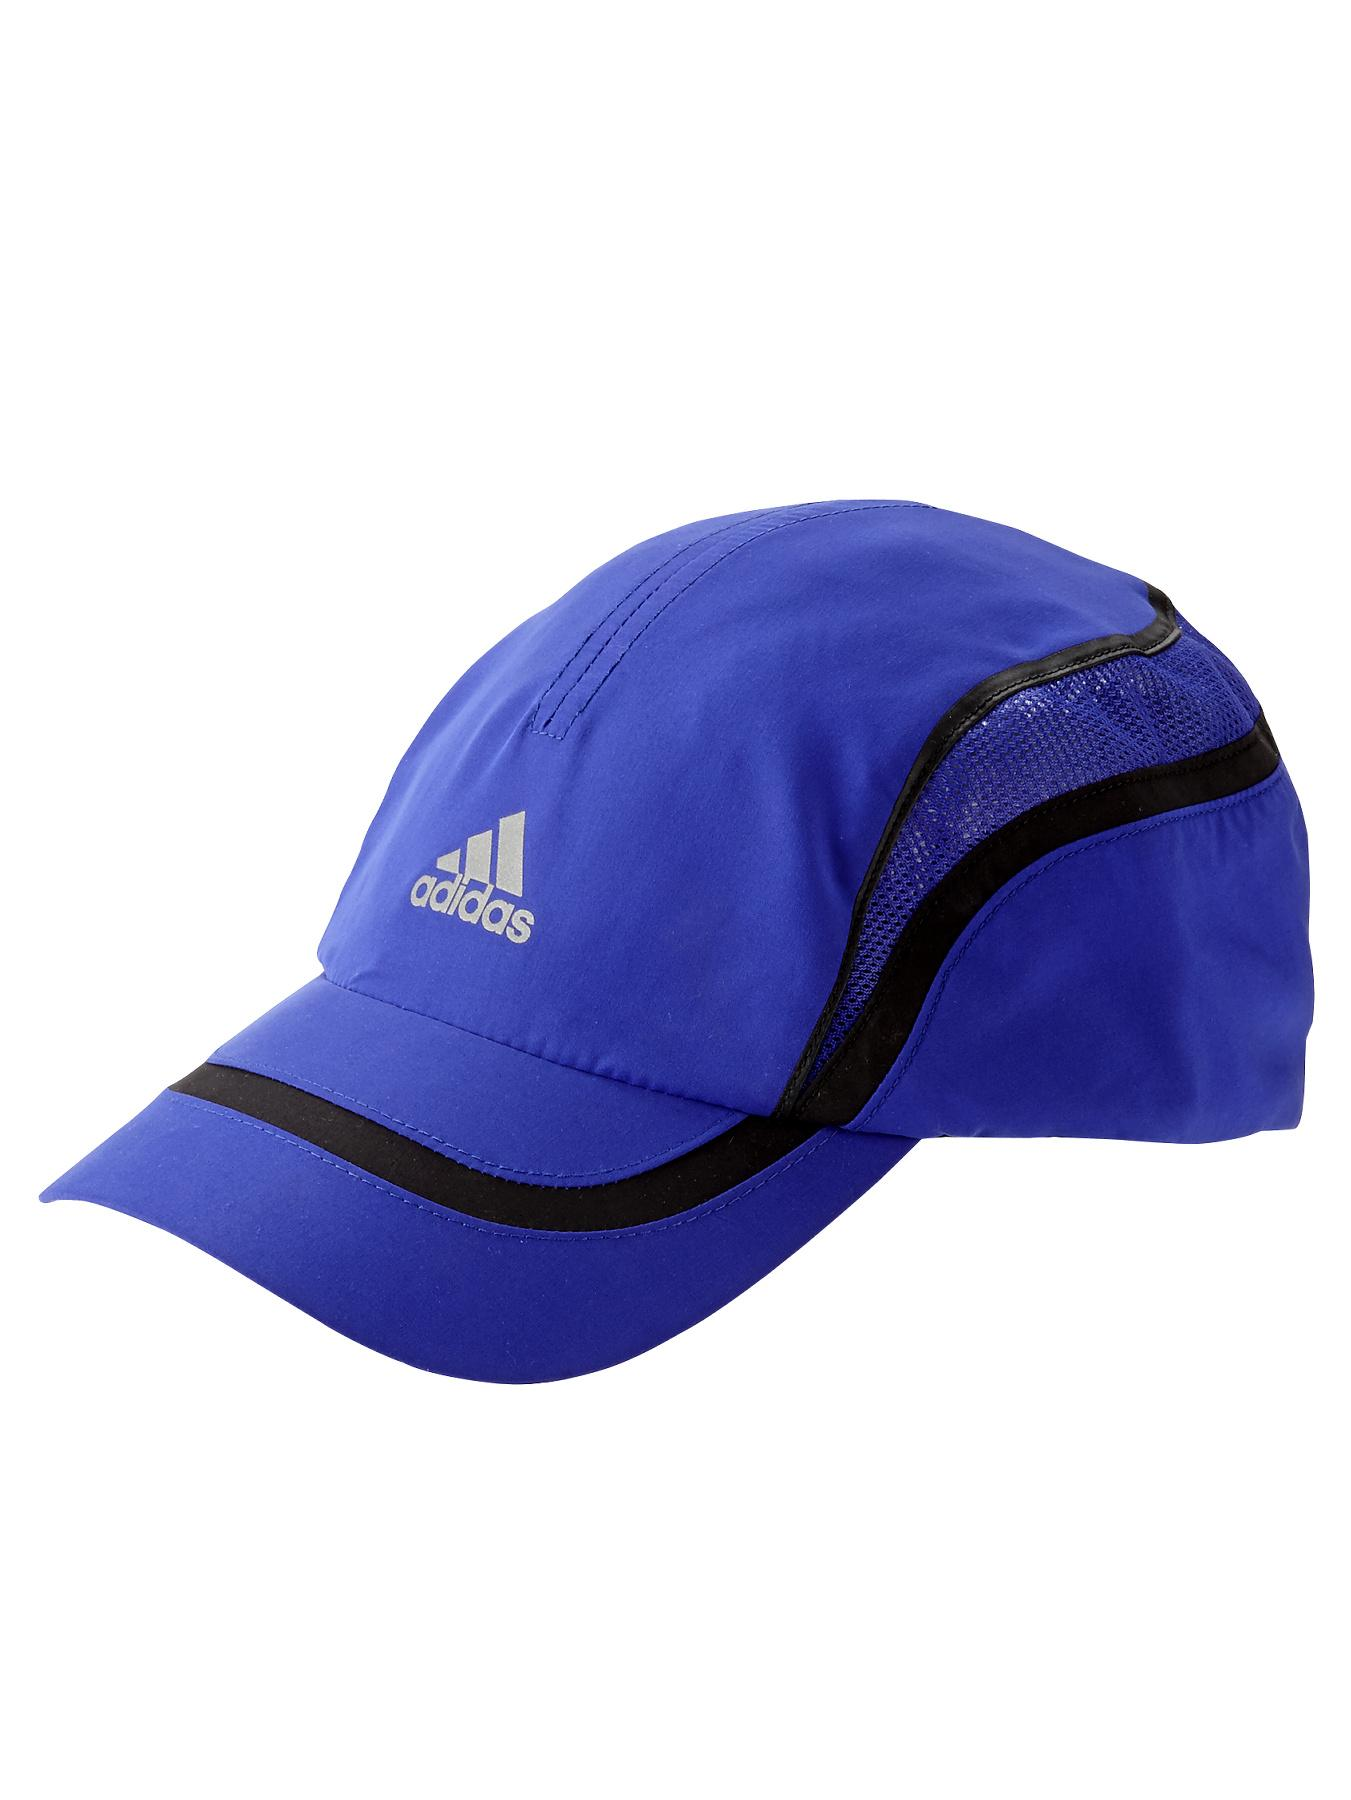 adidas Running Cap - Purple, Purple